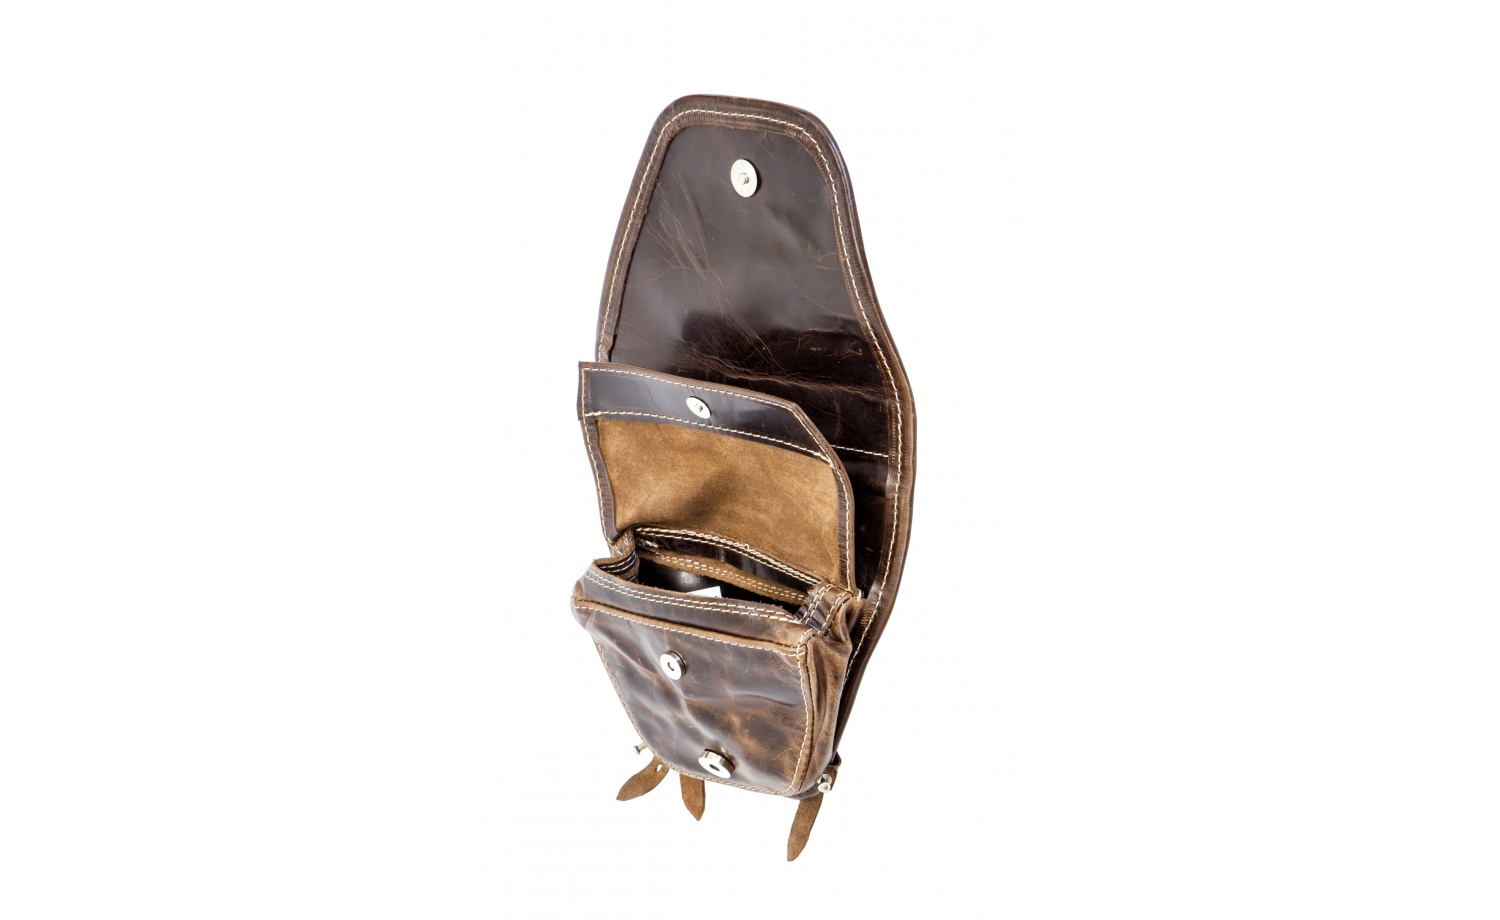 KOSTKA carrying bag with flap for BMX Handlebar (Leather)